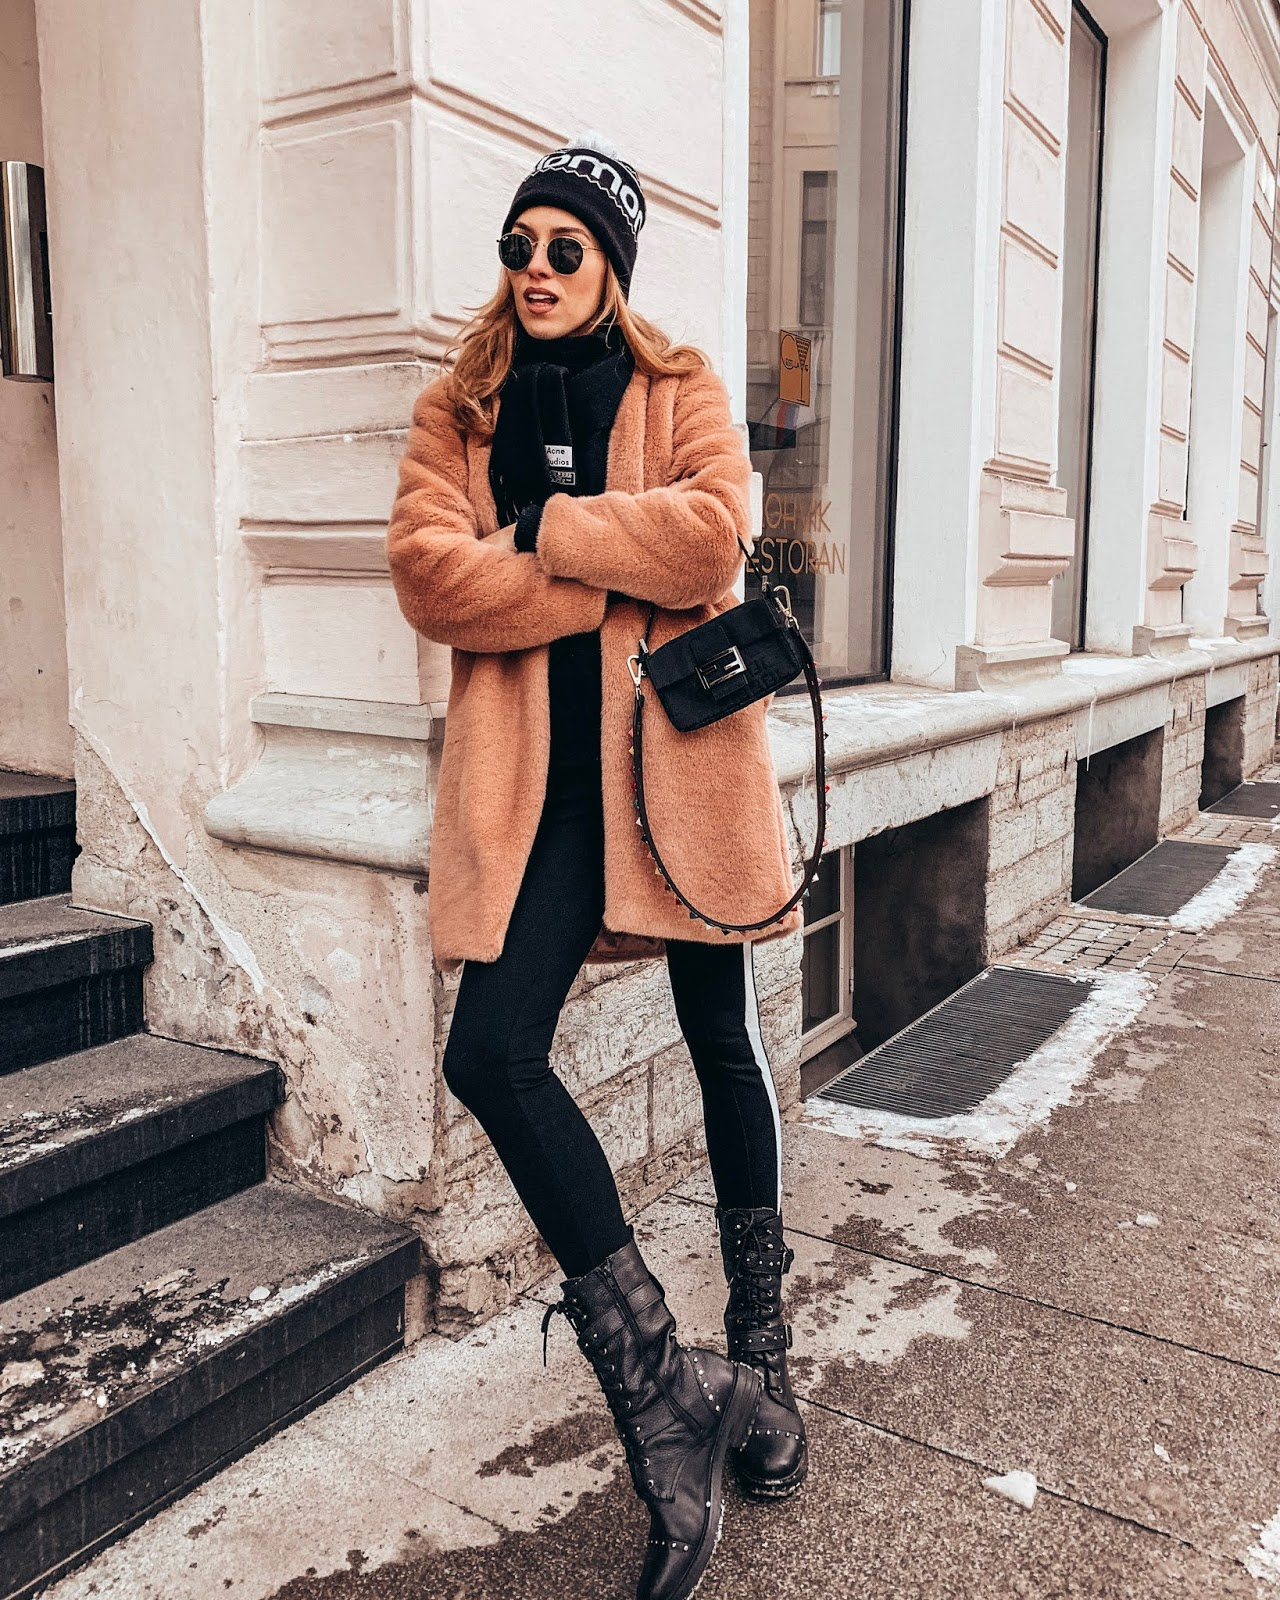 pink faux fur coat acne scarf fendi baguette bag ray ban round sunglasses beanie winter outfit